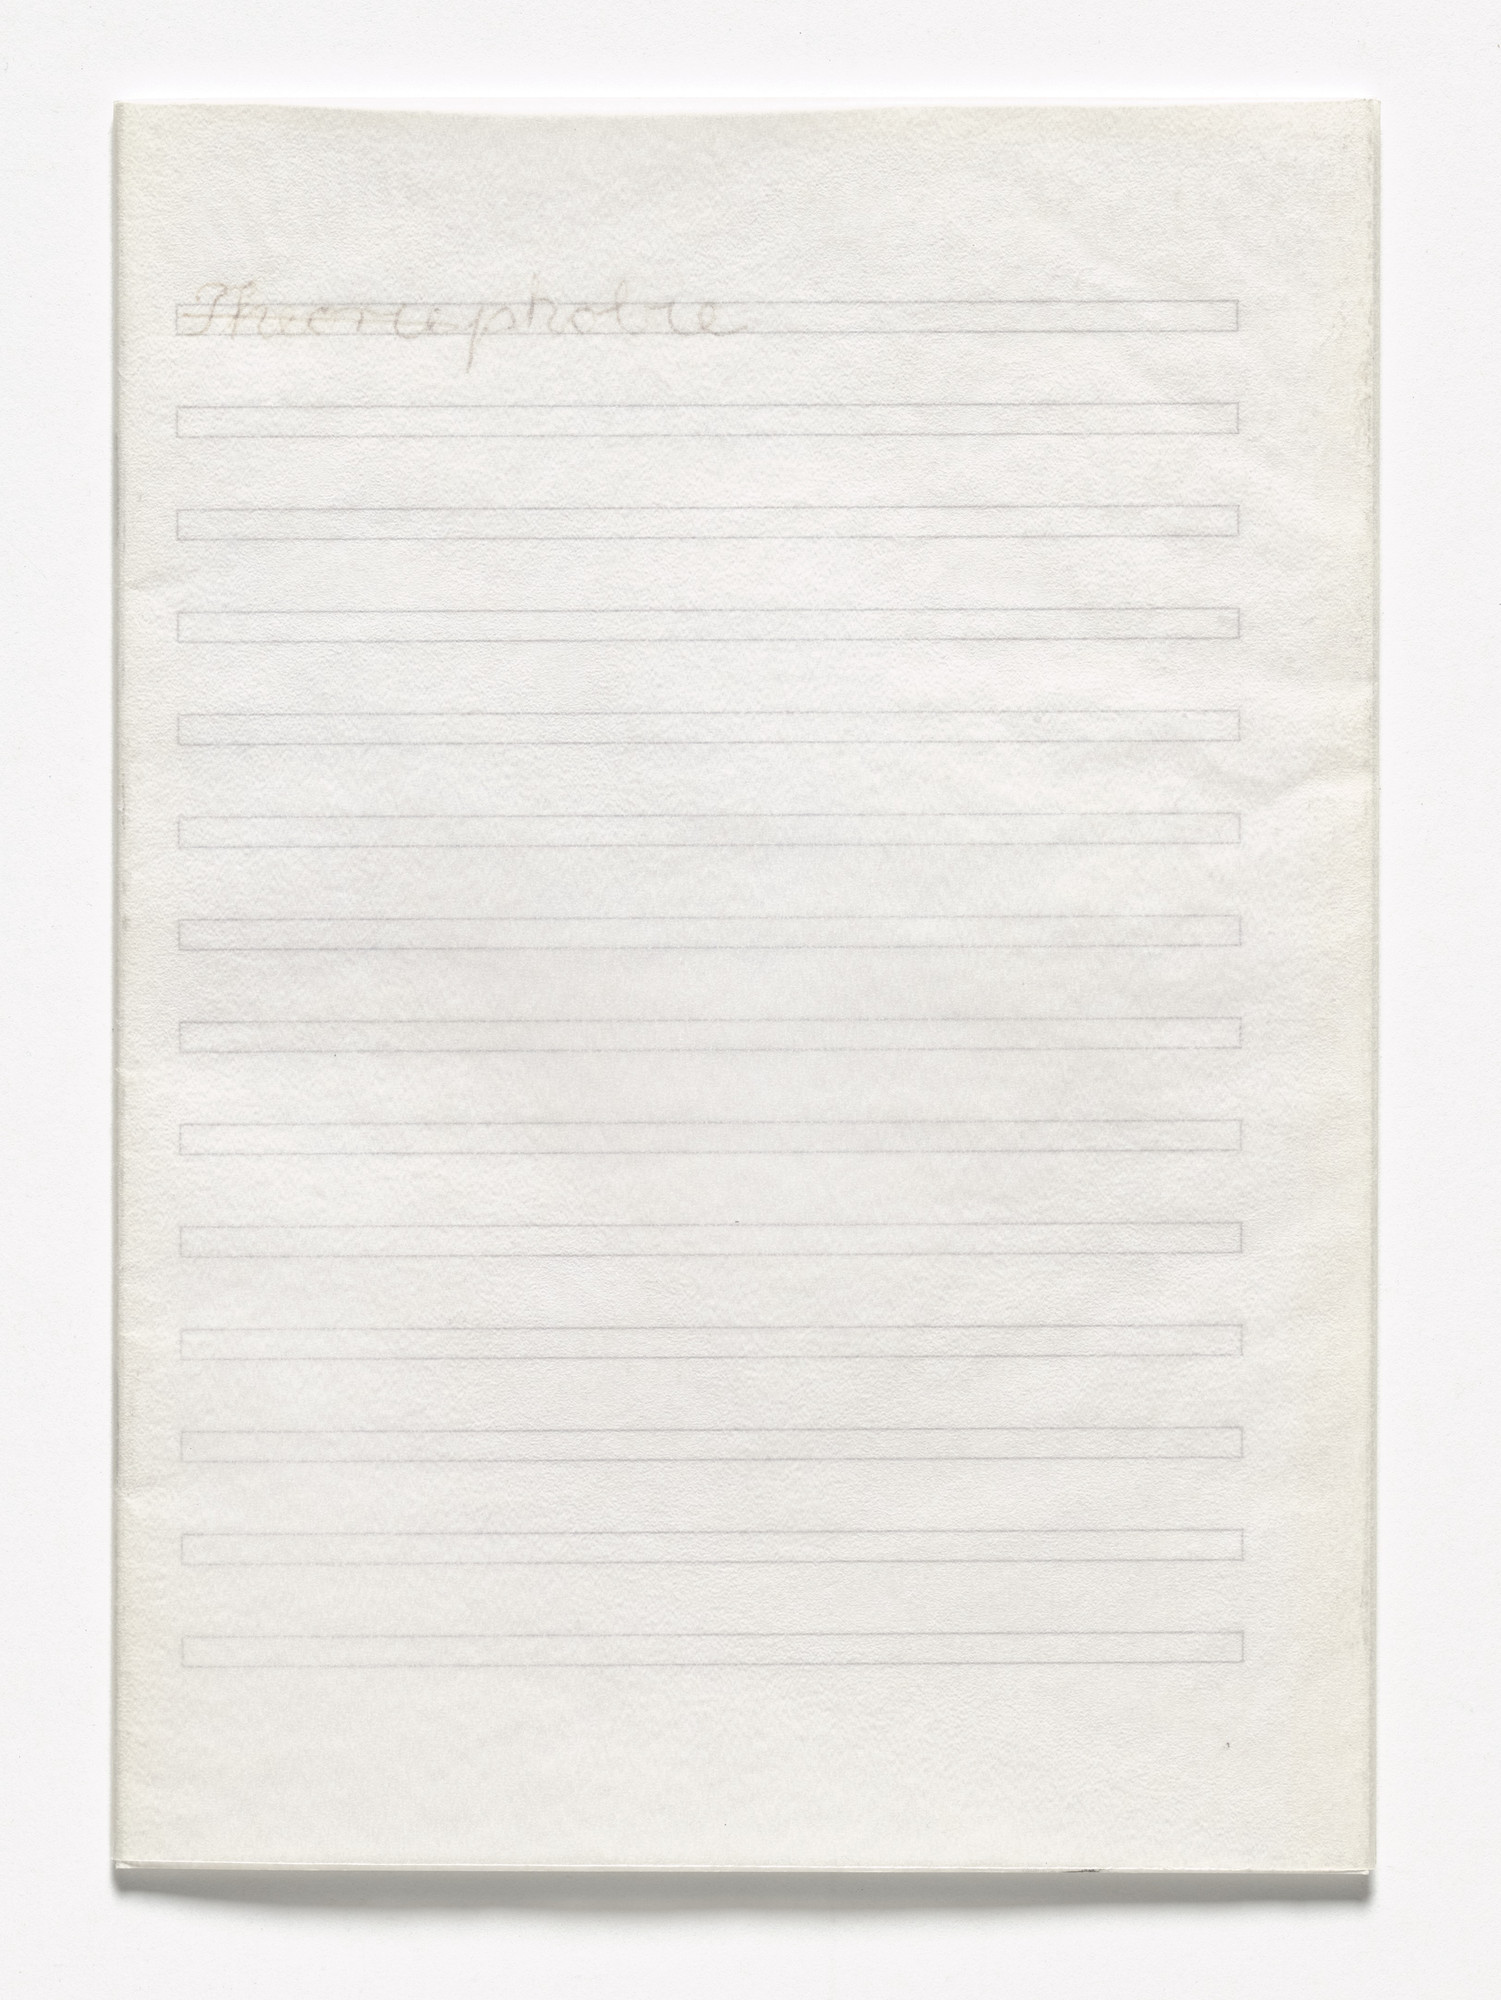 Rosemarie Trockel. Book Drafts. 1978–2003